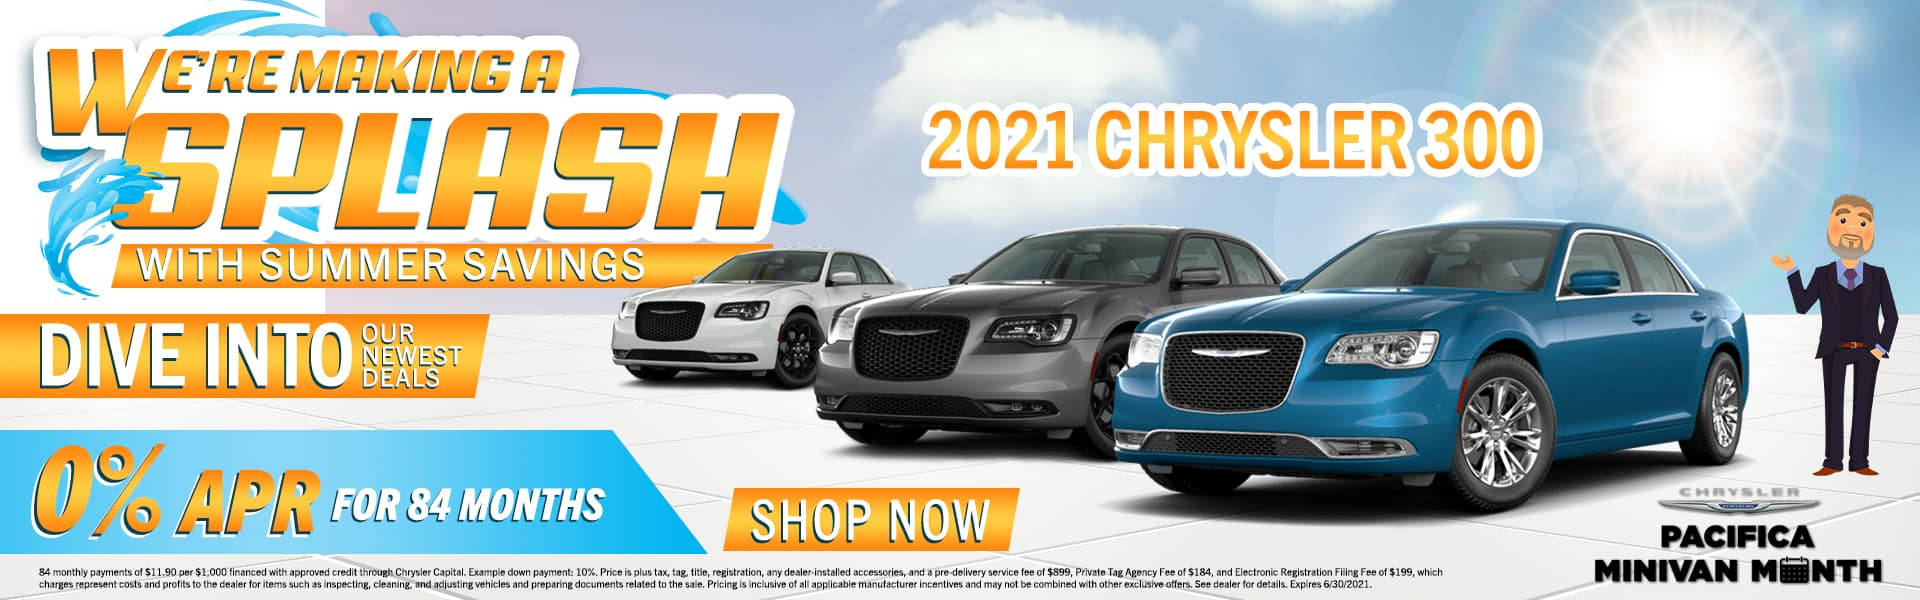 We're Making A Splash With Summer Savings | Dive Into Our Newest Deals | 2021 Chrysler 300 | 0% APR For 84 Months